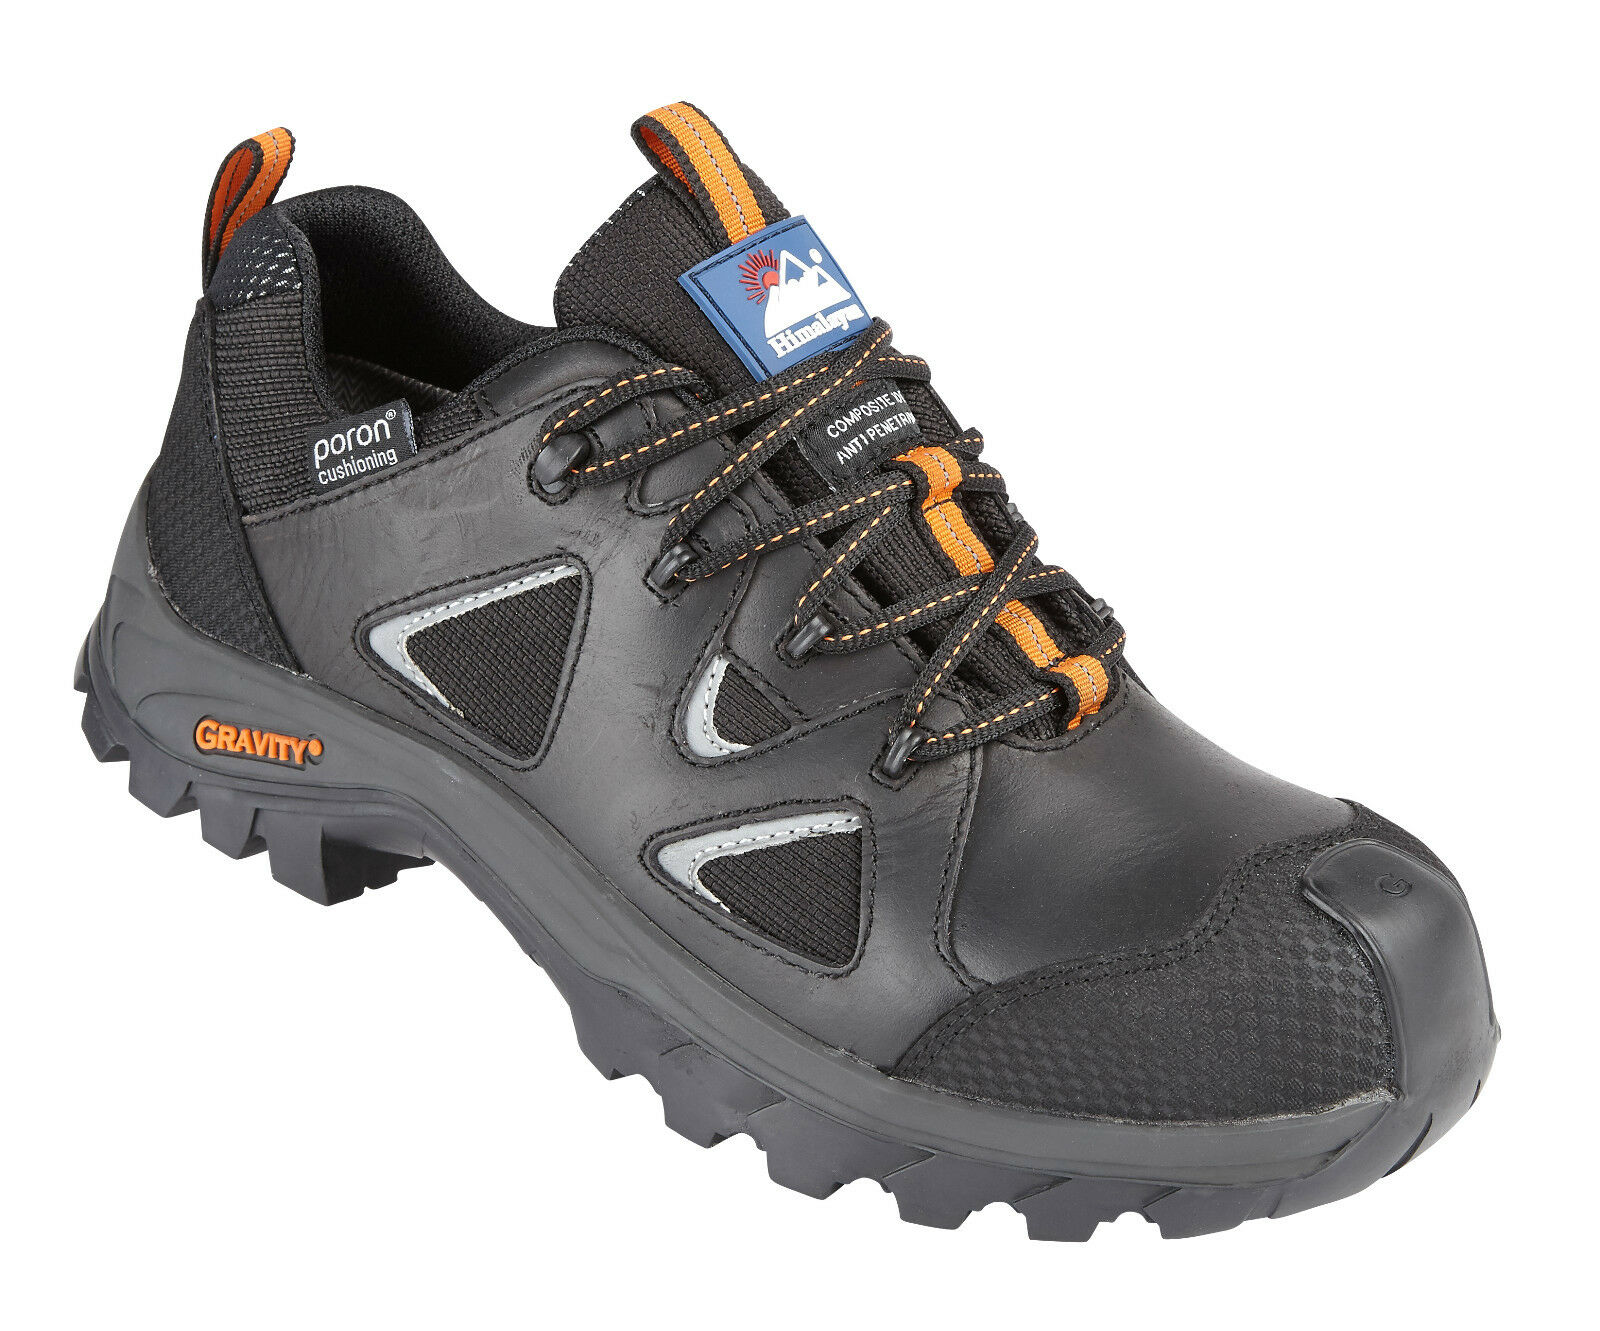 Himalayan 4120 Gravity S3 SRC Composite Toe Metal Free Waterproof Safety shoes